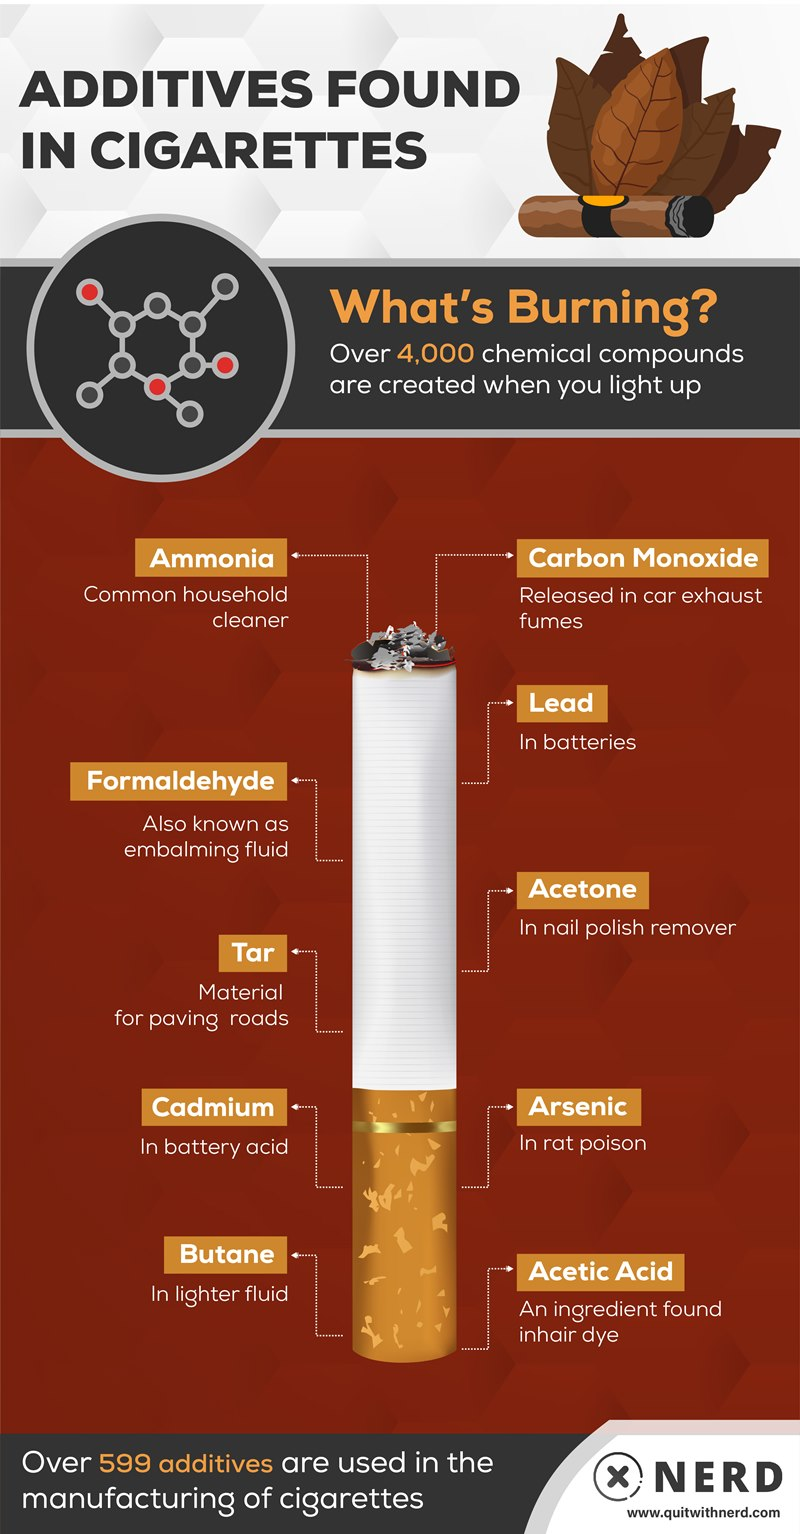 Poisonous Additives Found in Cigarettes Infographic by Quit With Nerd